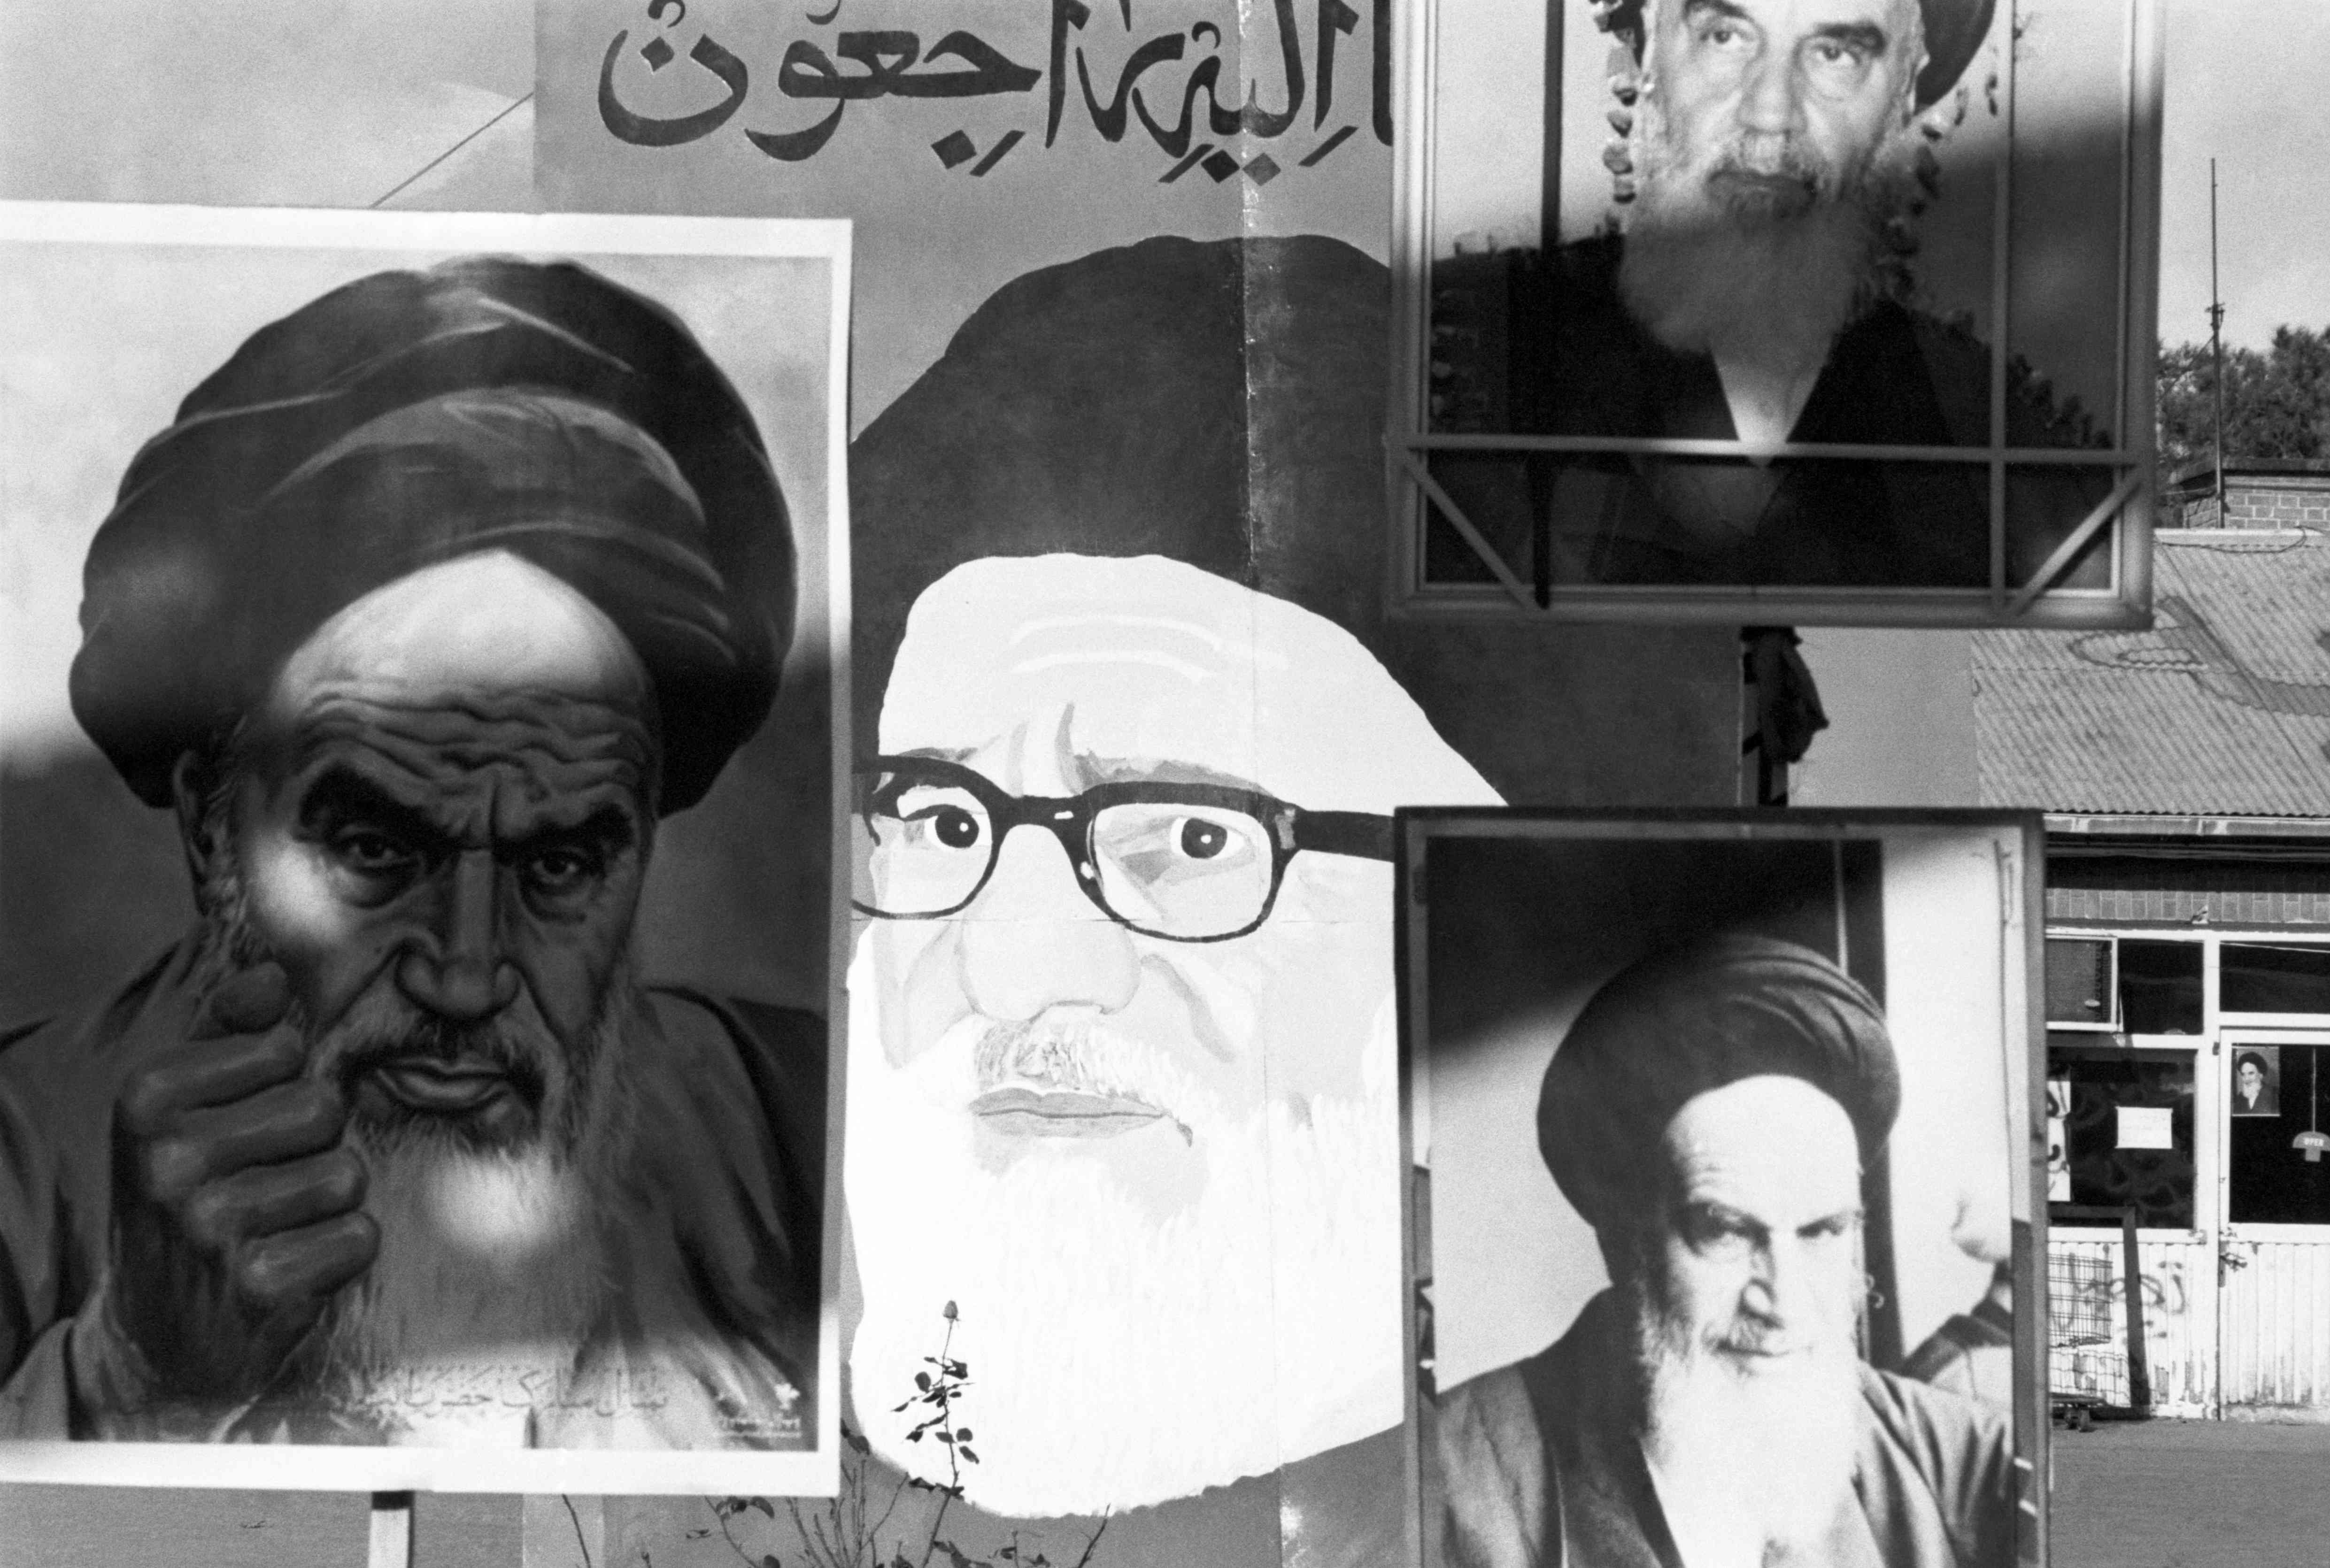 Posters of Ayatollah Khomein are displayed inside the American embassy compound.